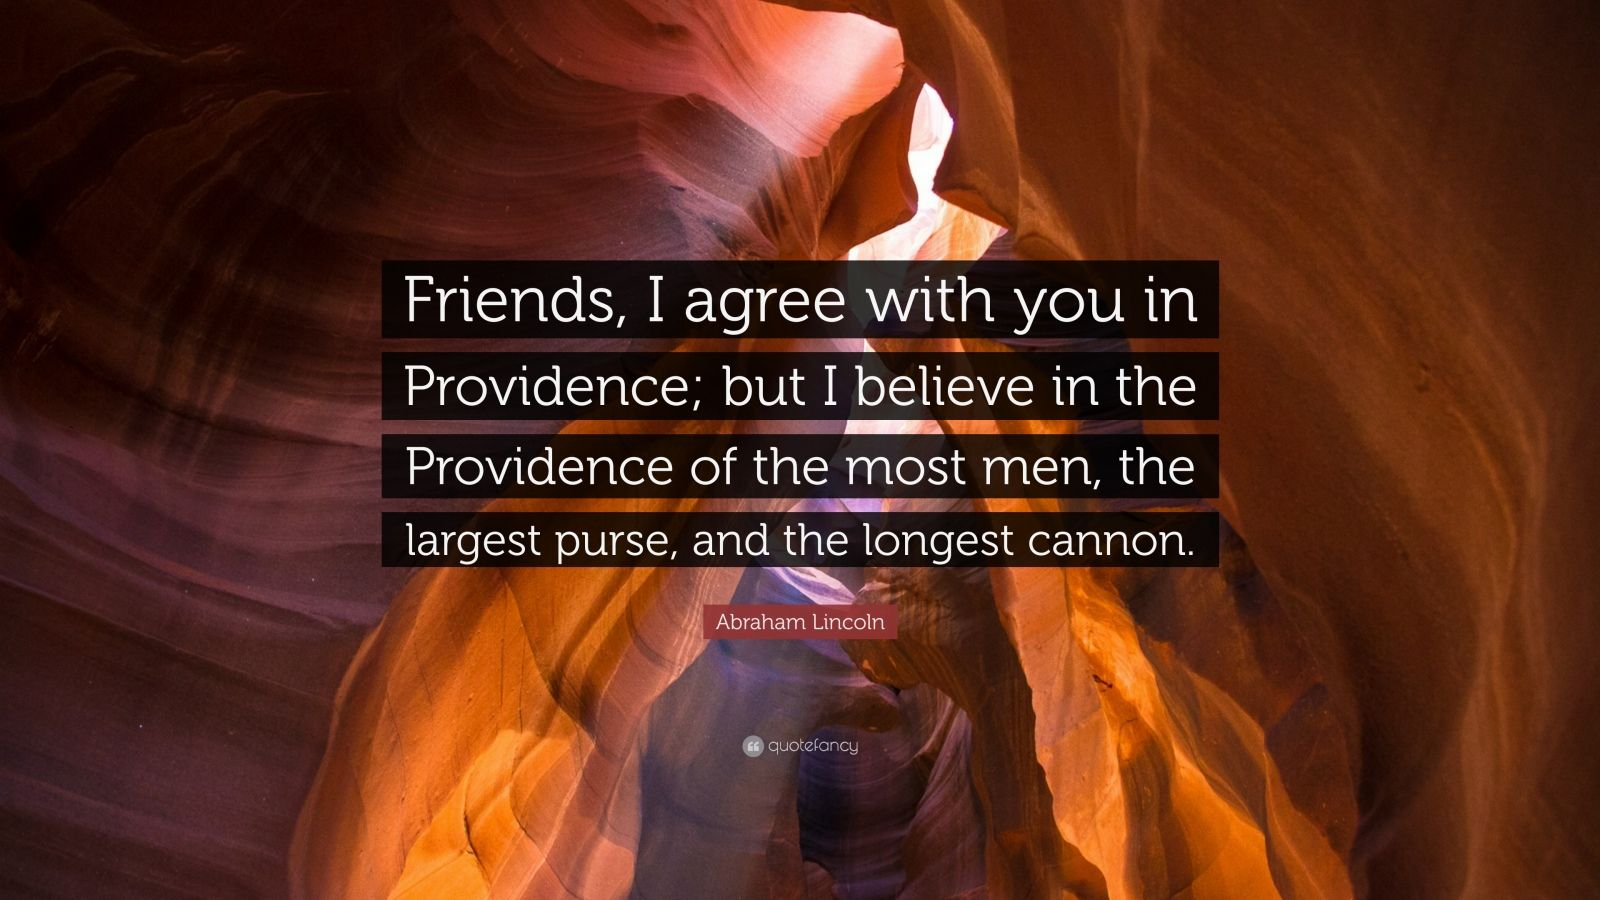 """Abraham Lincoln Quote: """"Friends, I agree with you in Providence; but I believe in the Providence of the most men, the largest purse, and the longest cannon."""""""